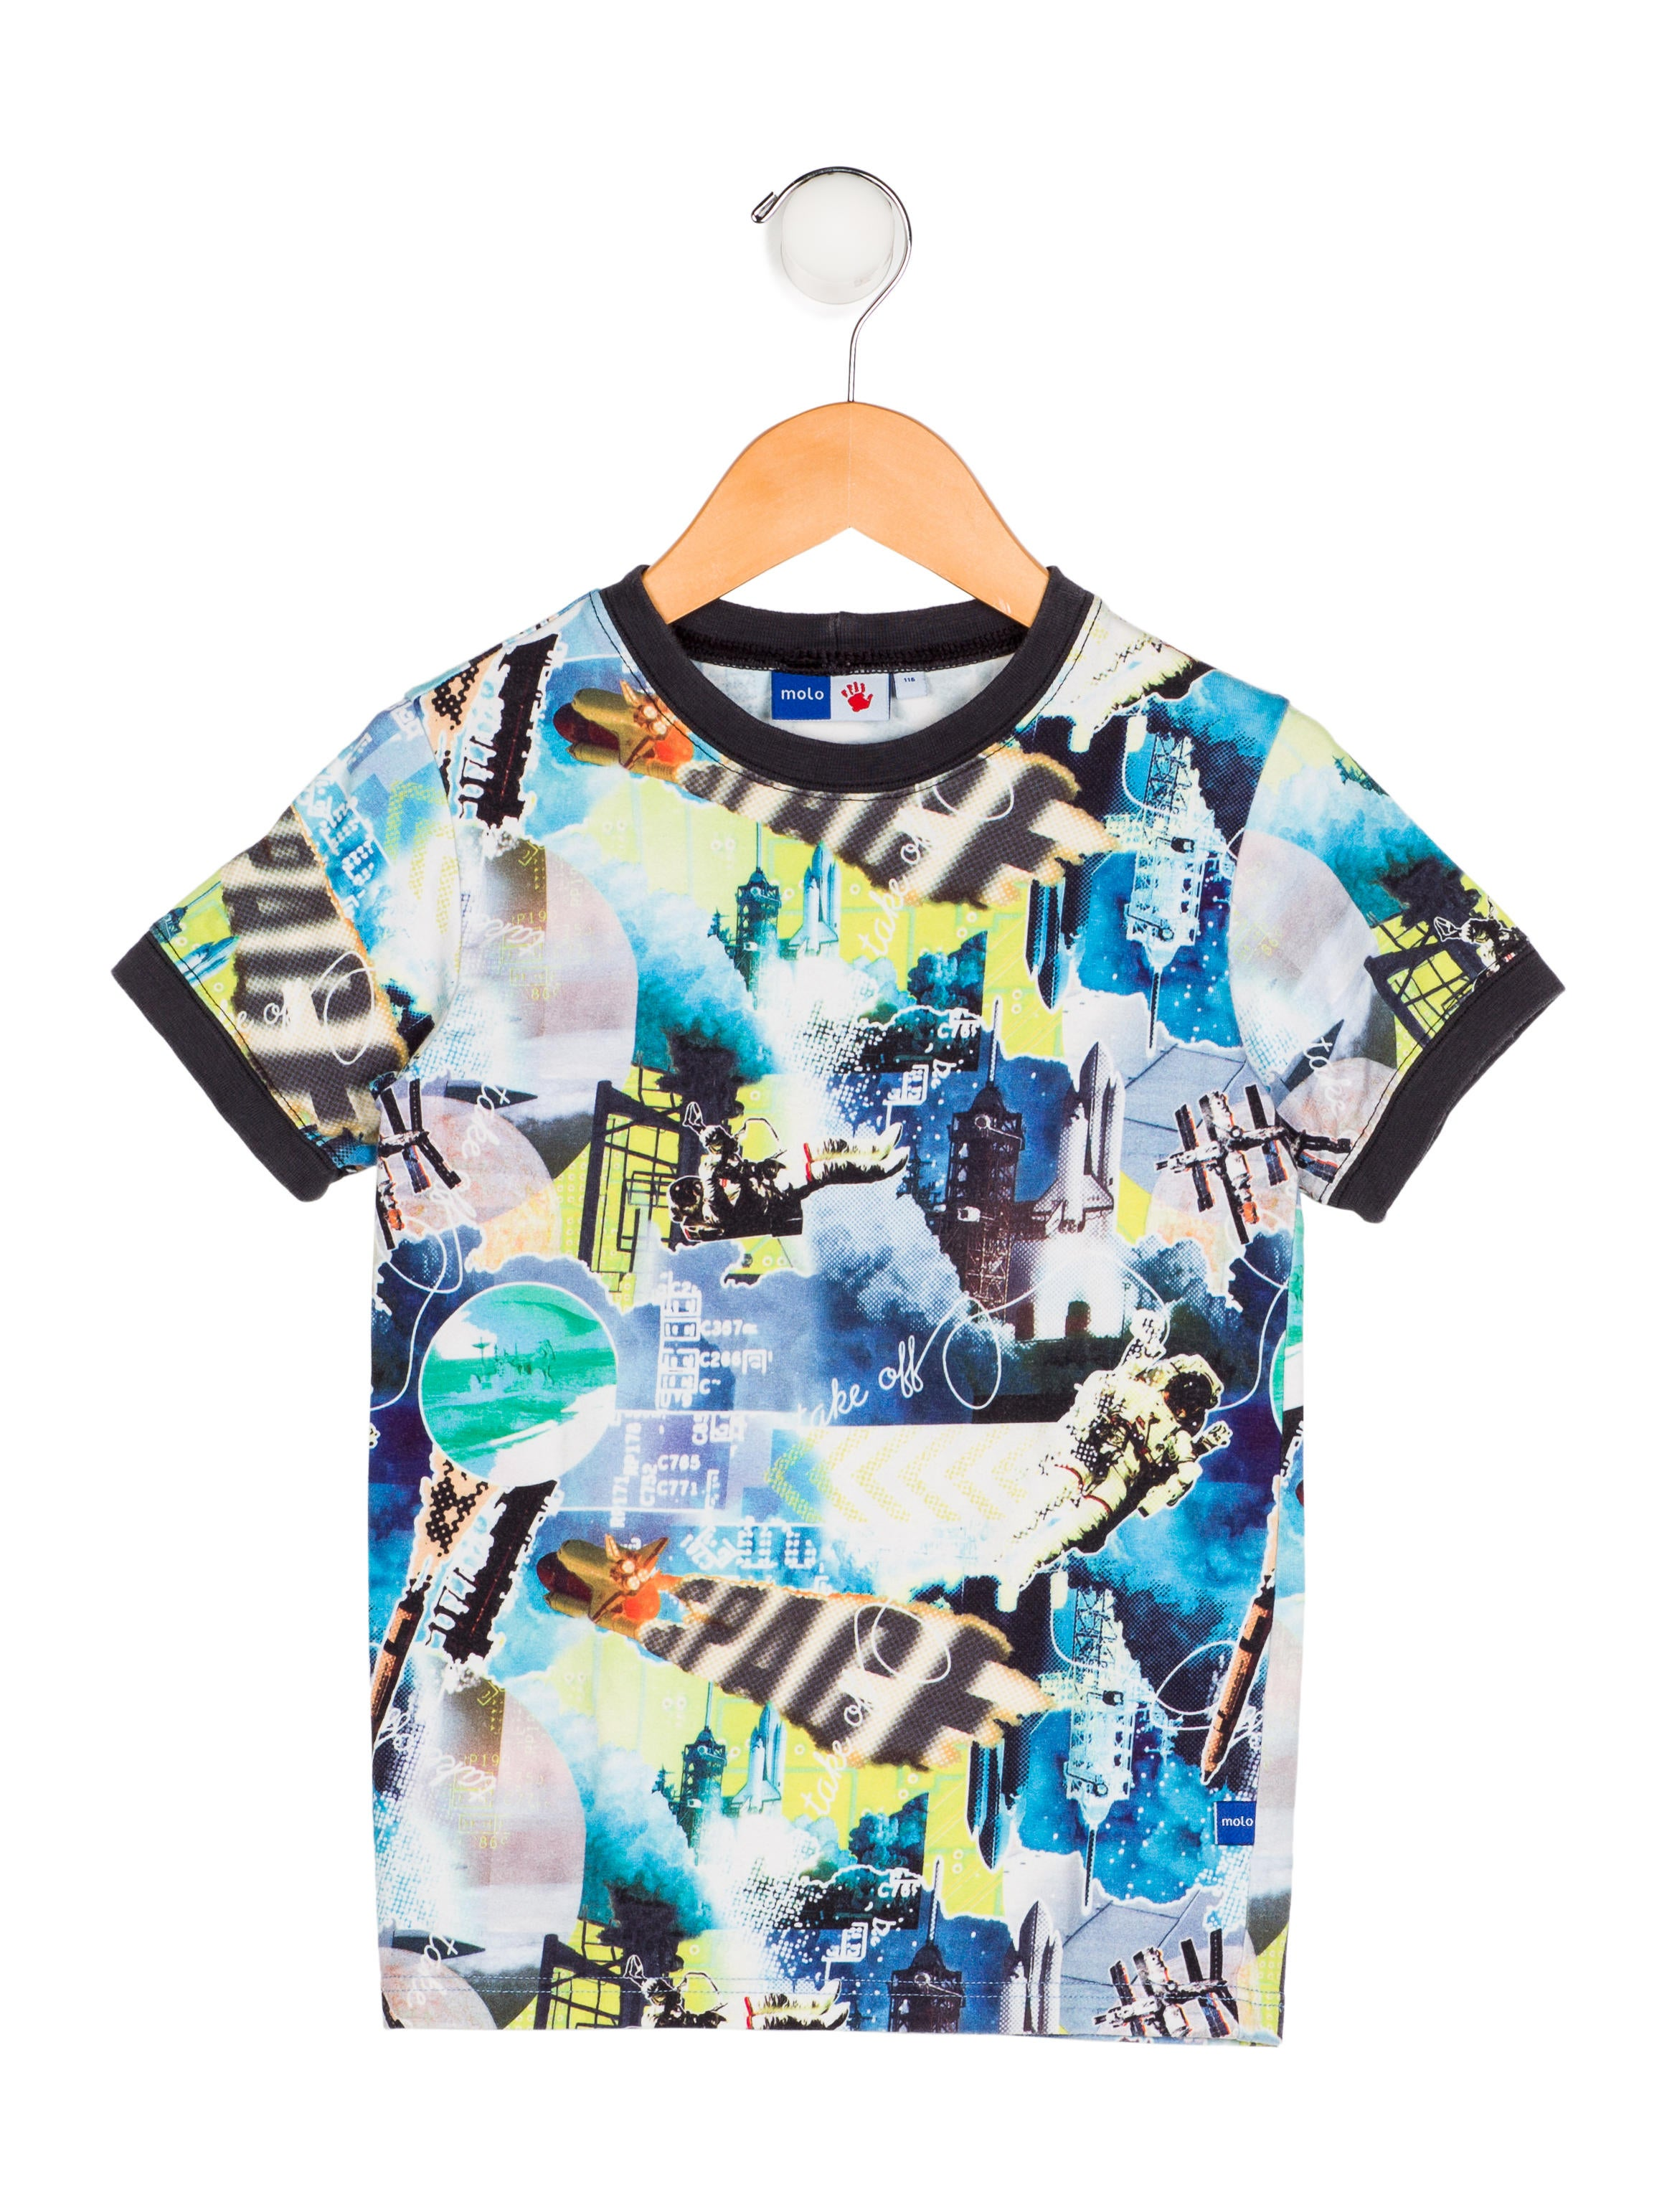 63a62dbd7 Molo Boys' Printed Knit Shirt - Boys - WMLLO20083 | The RealReal